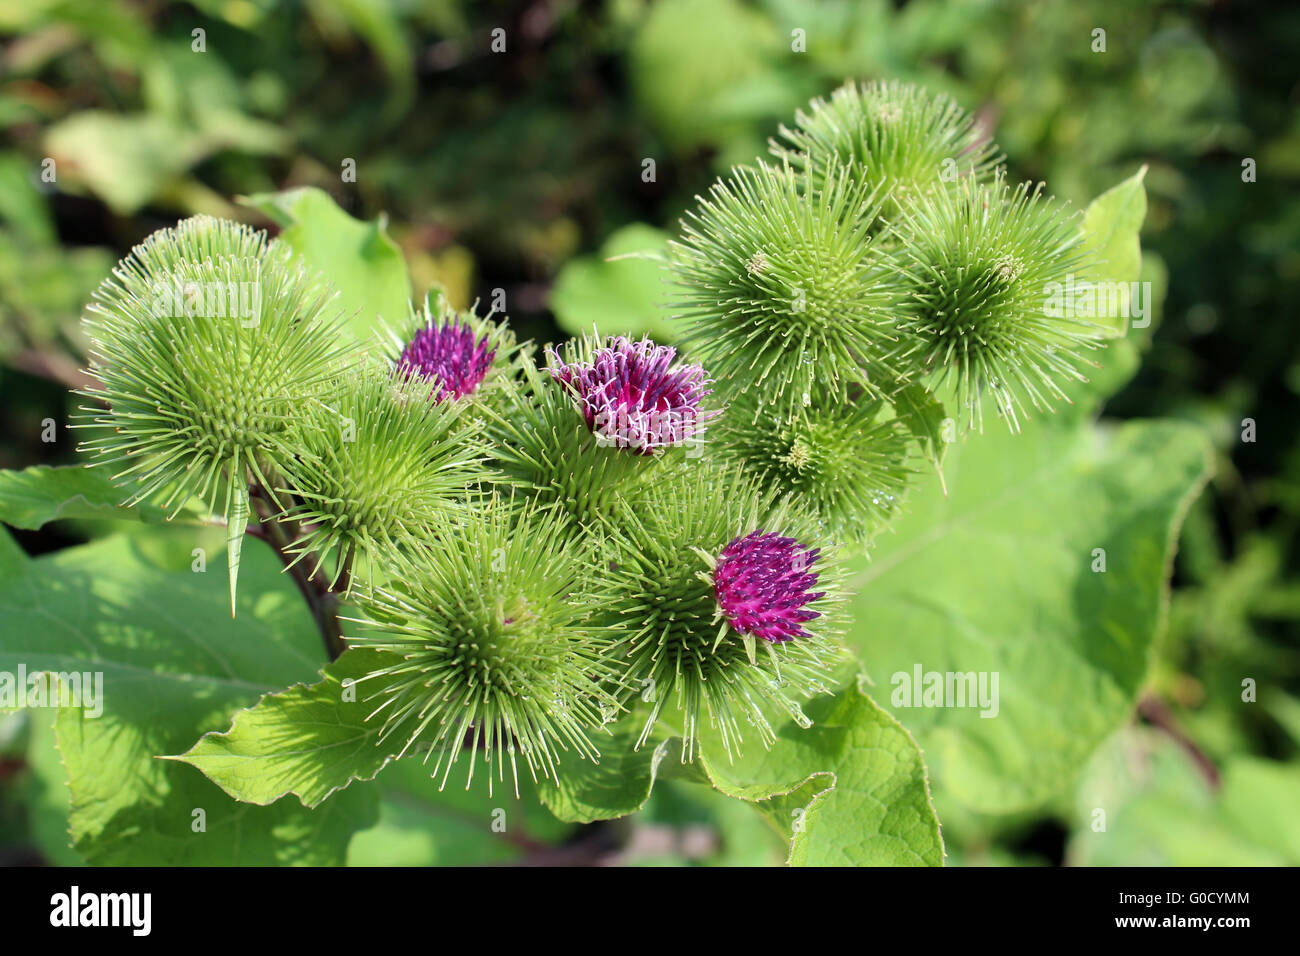 pink flowers of prickles of a burdock - Stock Image